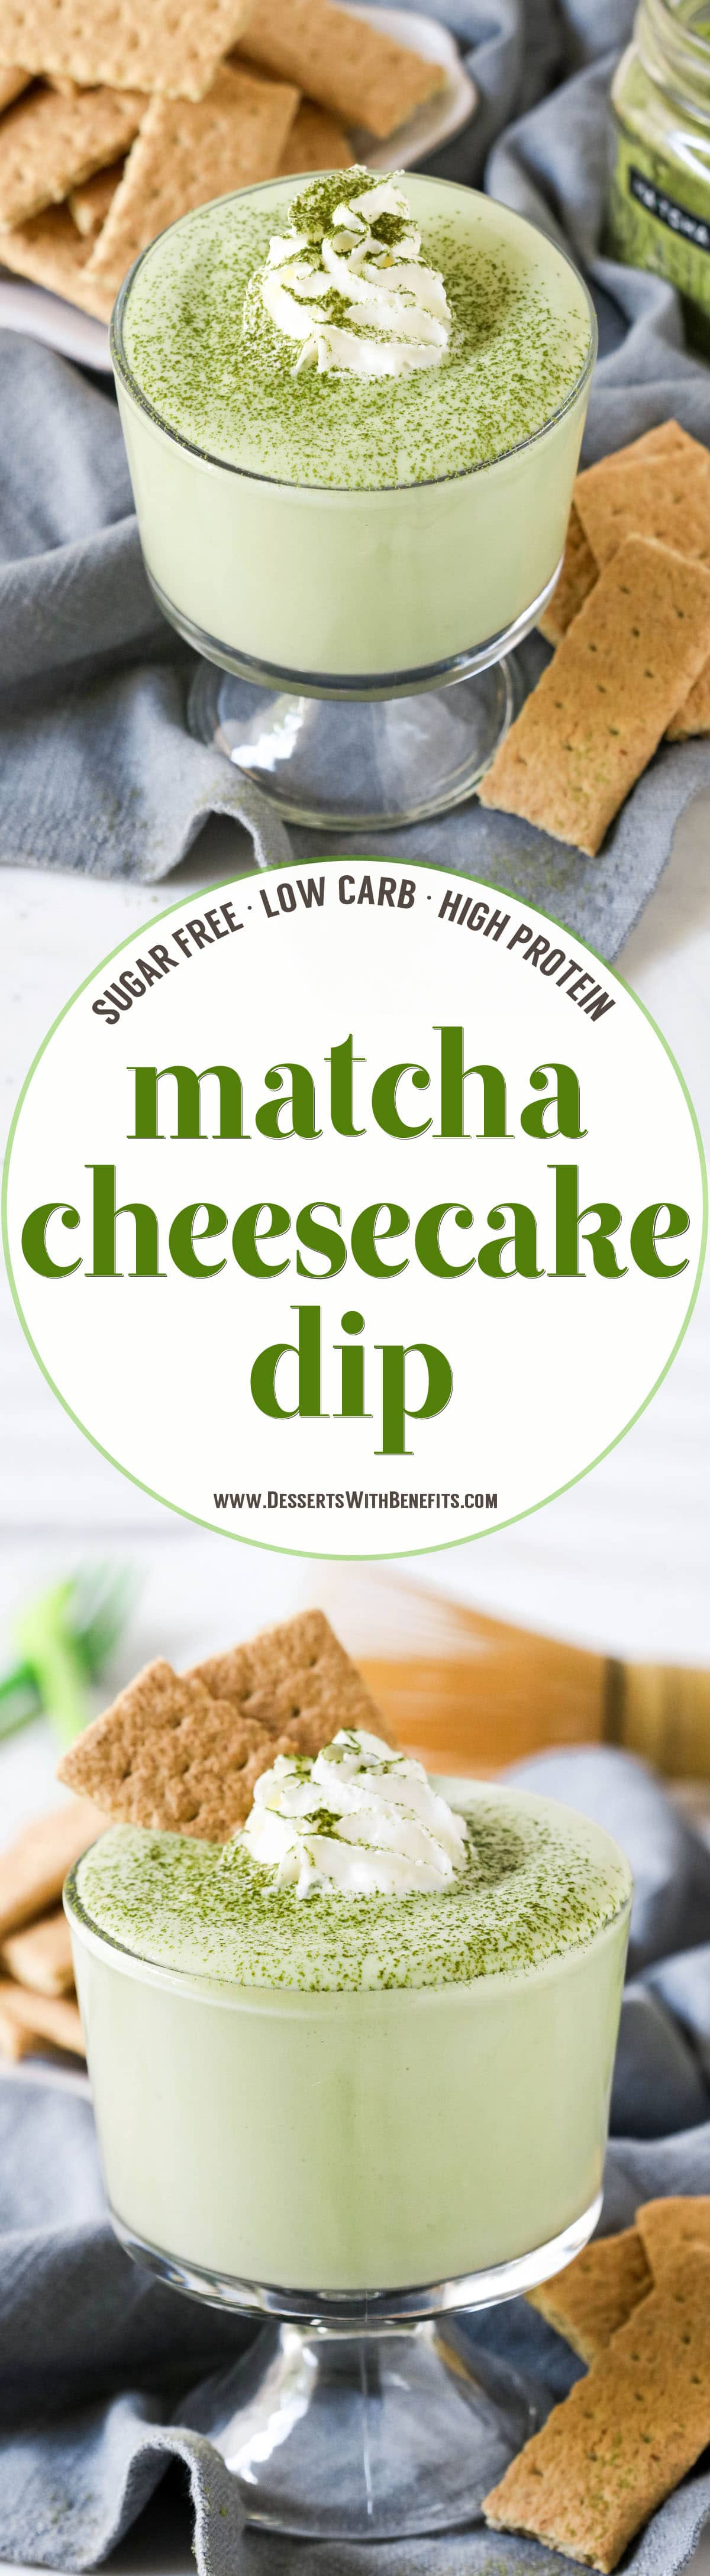 This 100-calorie Matcha Green Tea Cheesecake Dip is ultra smooth, creamy, sweet, and satisfying. It tastes just like matcha cheesecake batter, except this version is sugar free, low carb, low fat, and high protein!  Only five ingredients and a few minutes needed to whip this together -- you'll be guilt-free snacking in no time!